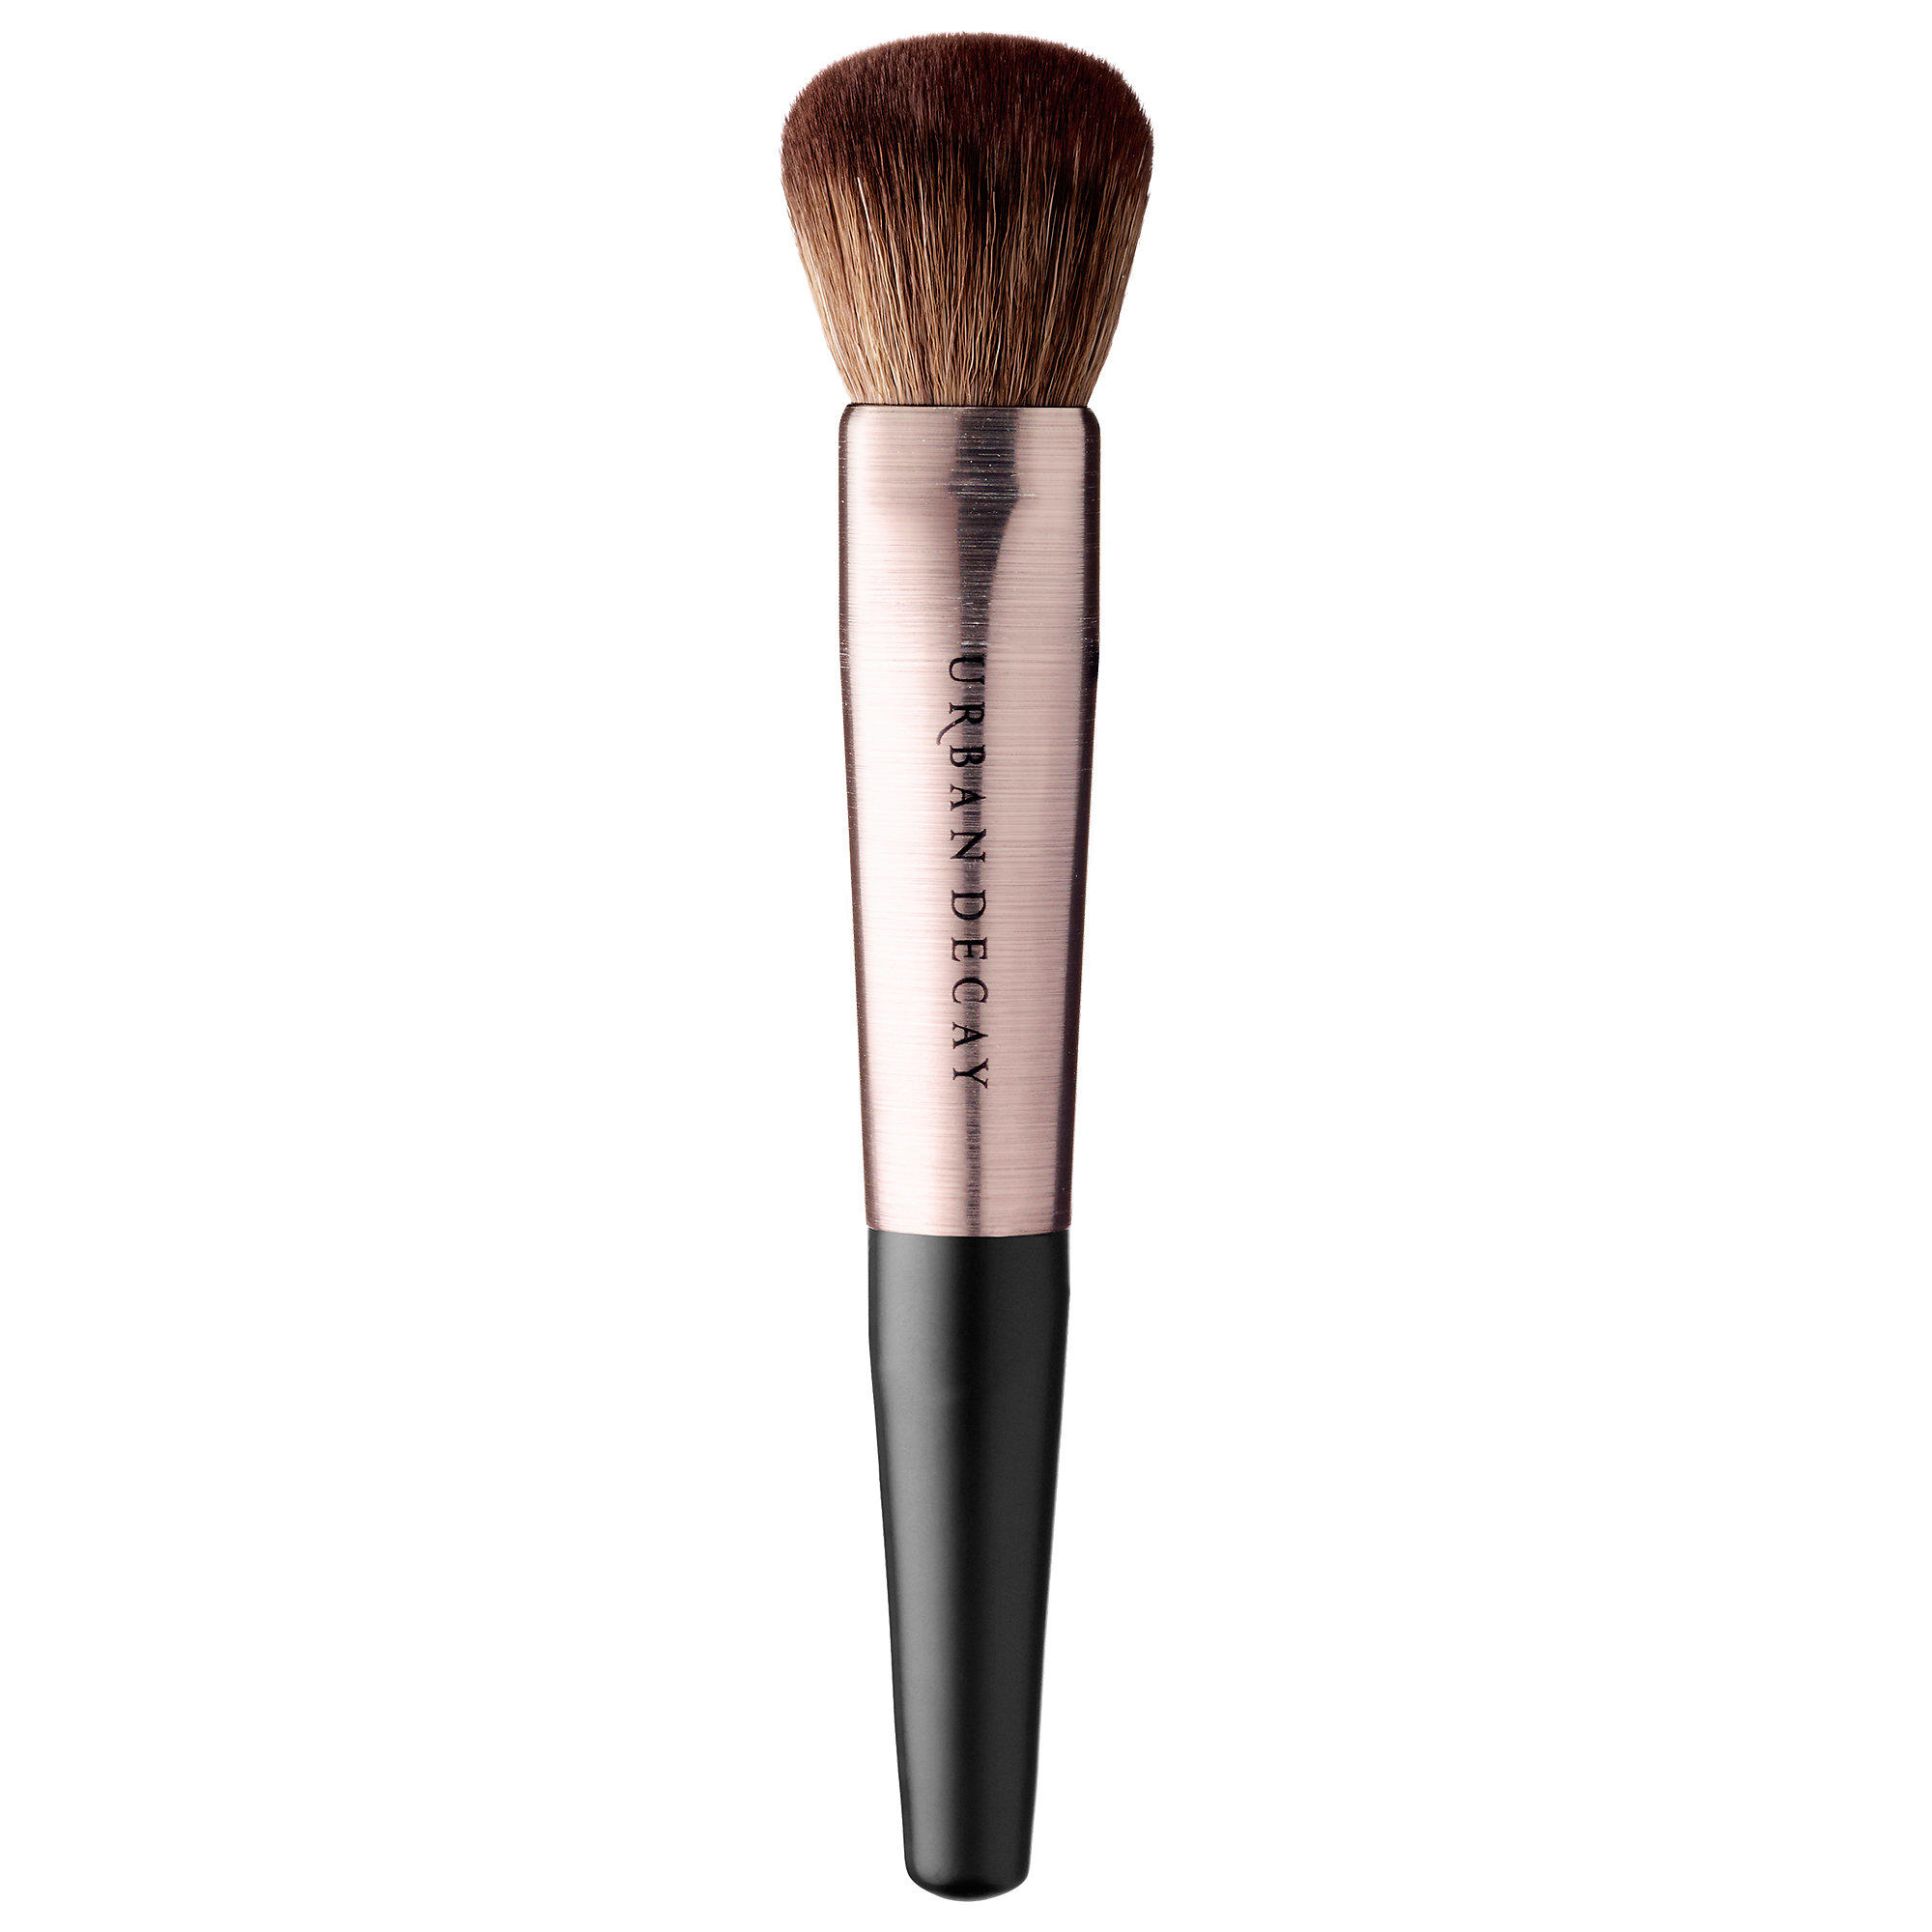 Urban Decay Pro Brush Optical Blurring F105